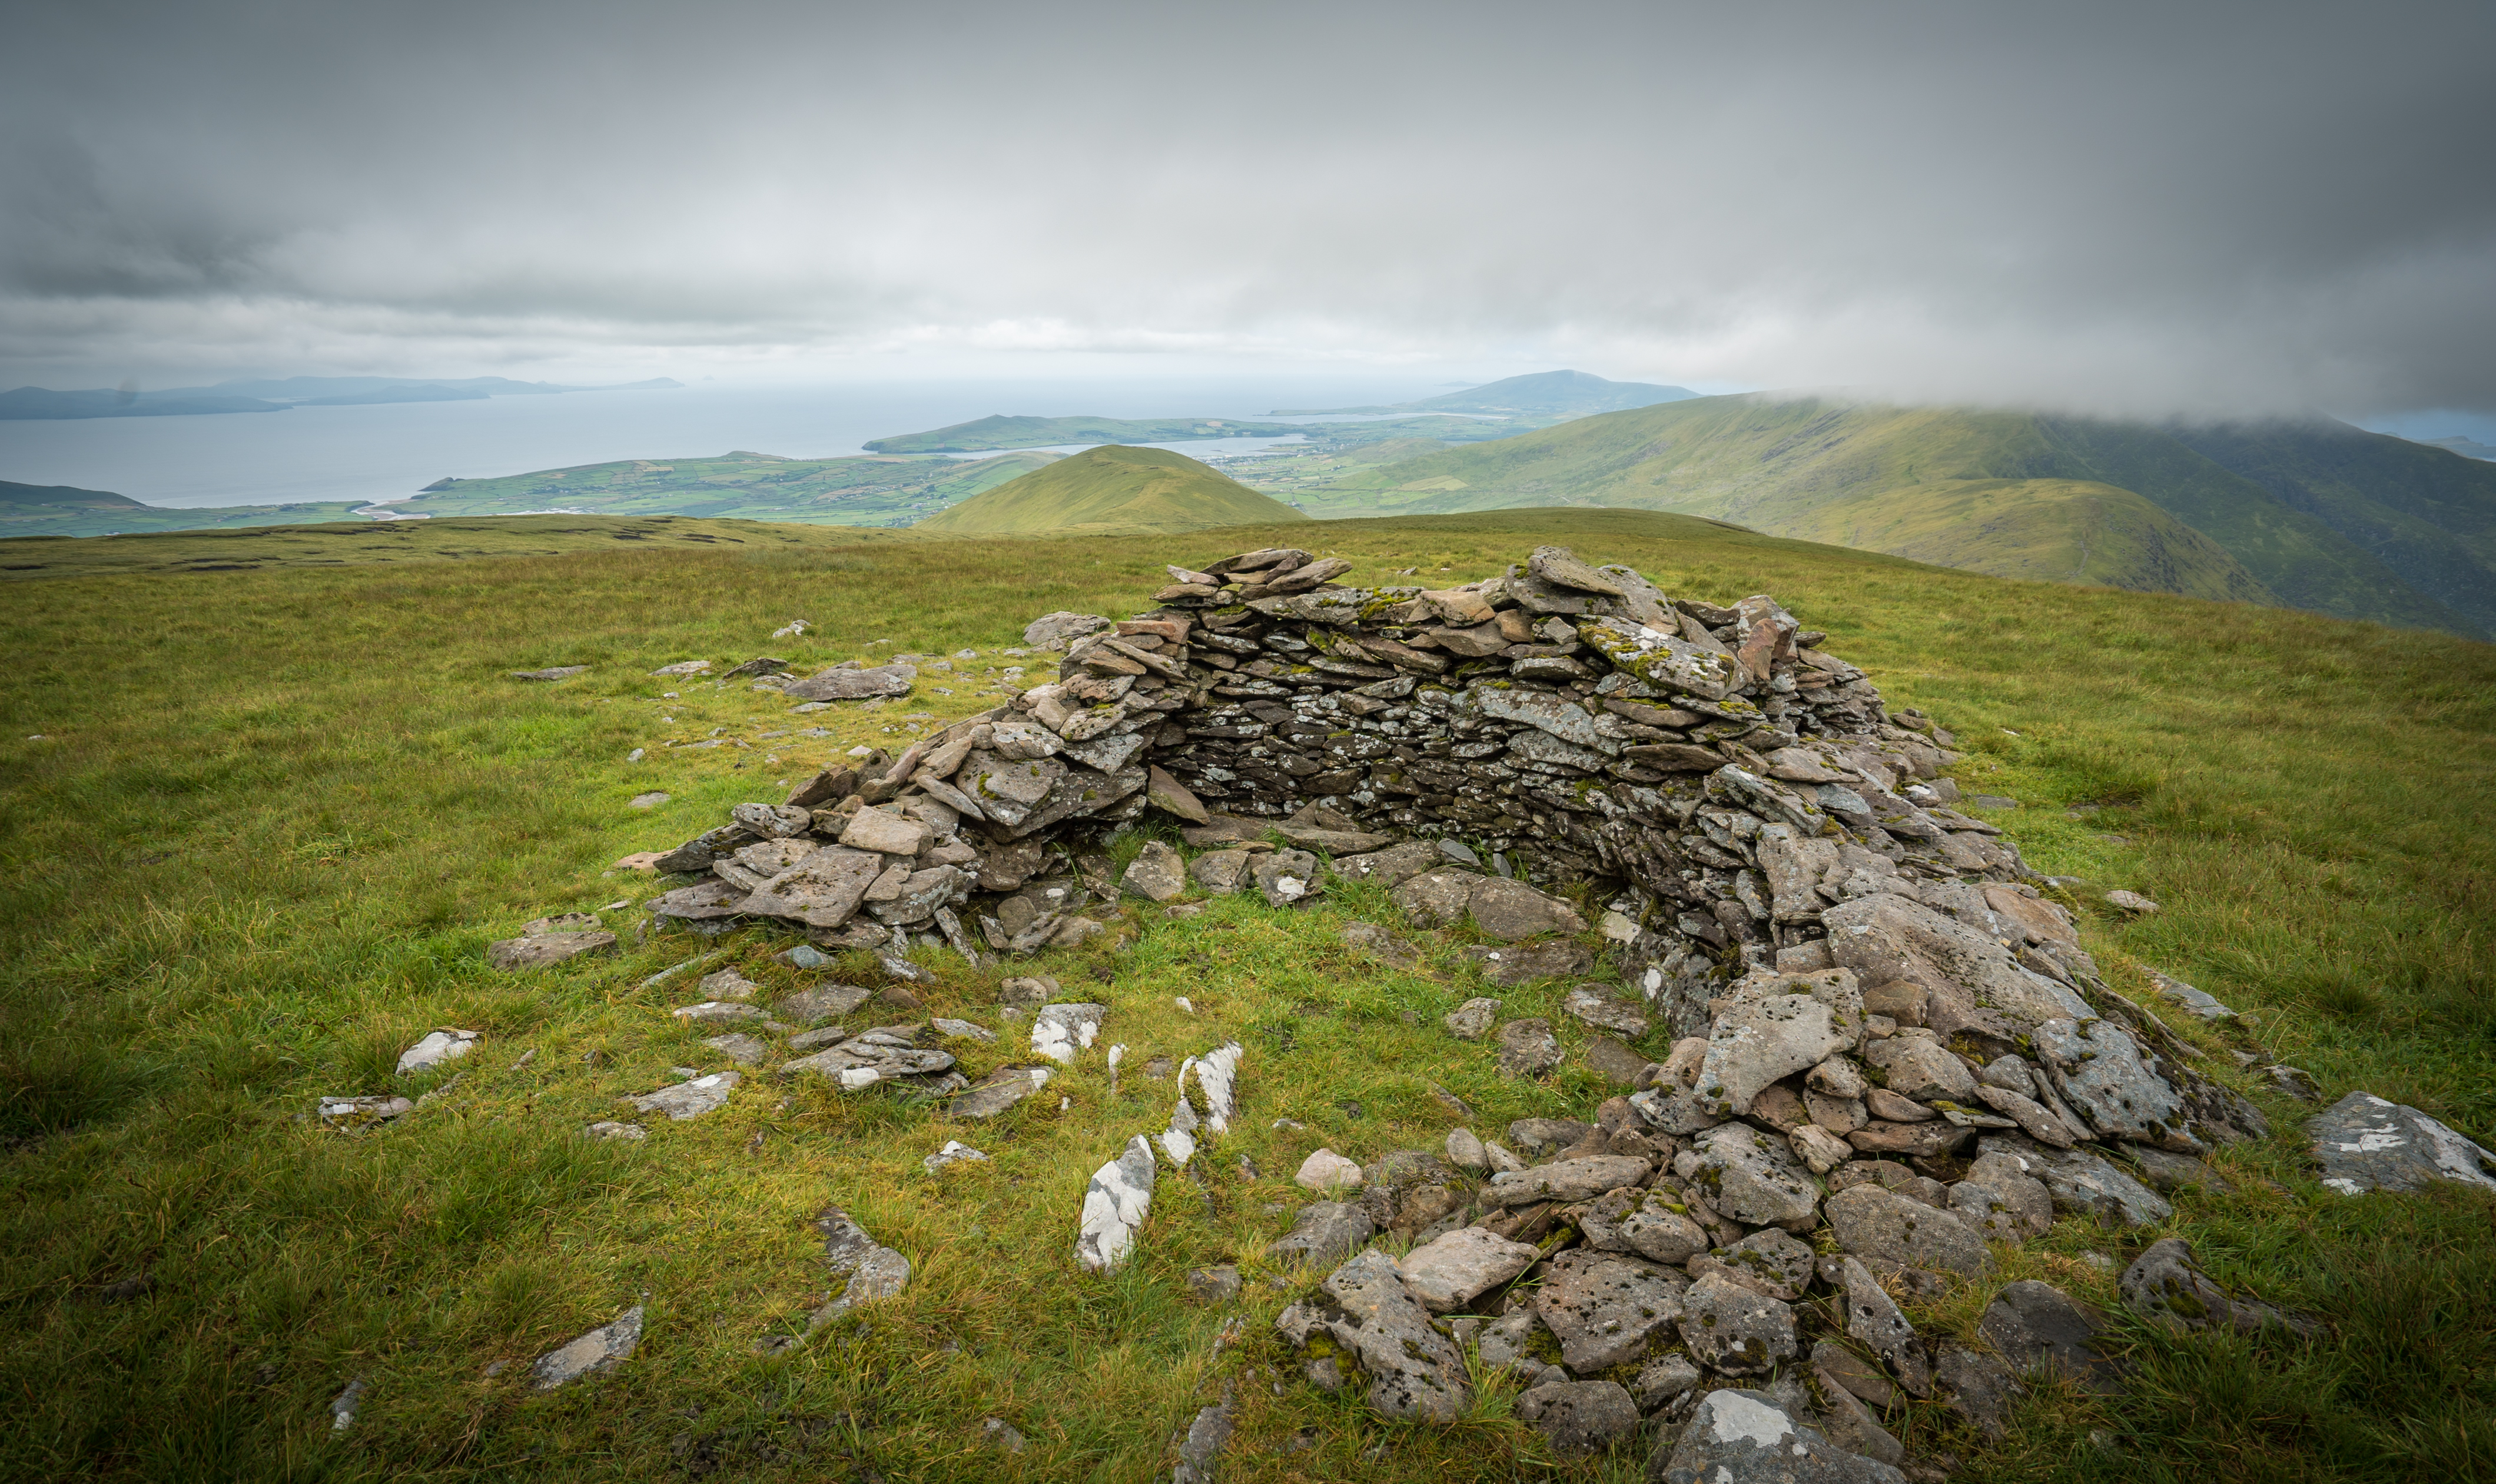 Shelter at Conor Pass, Ireland